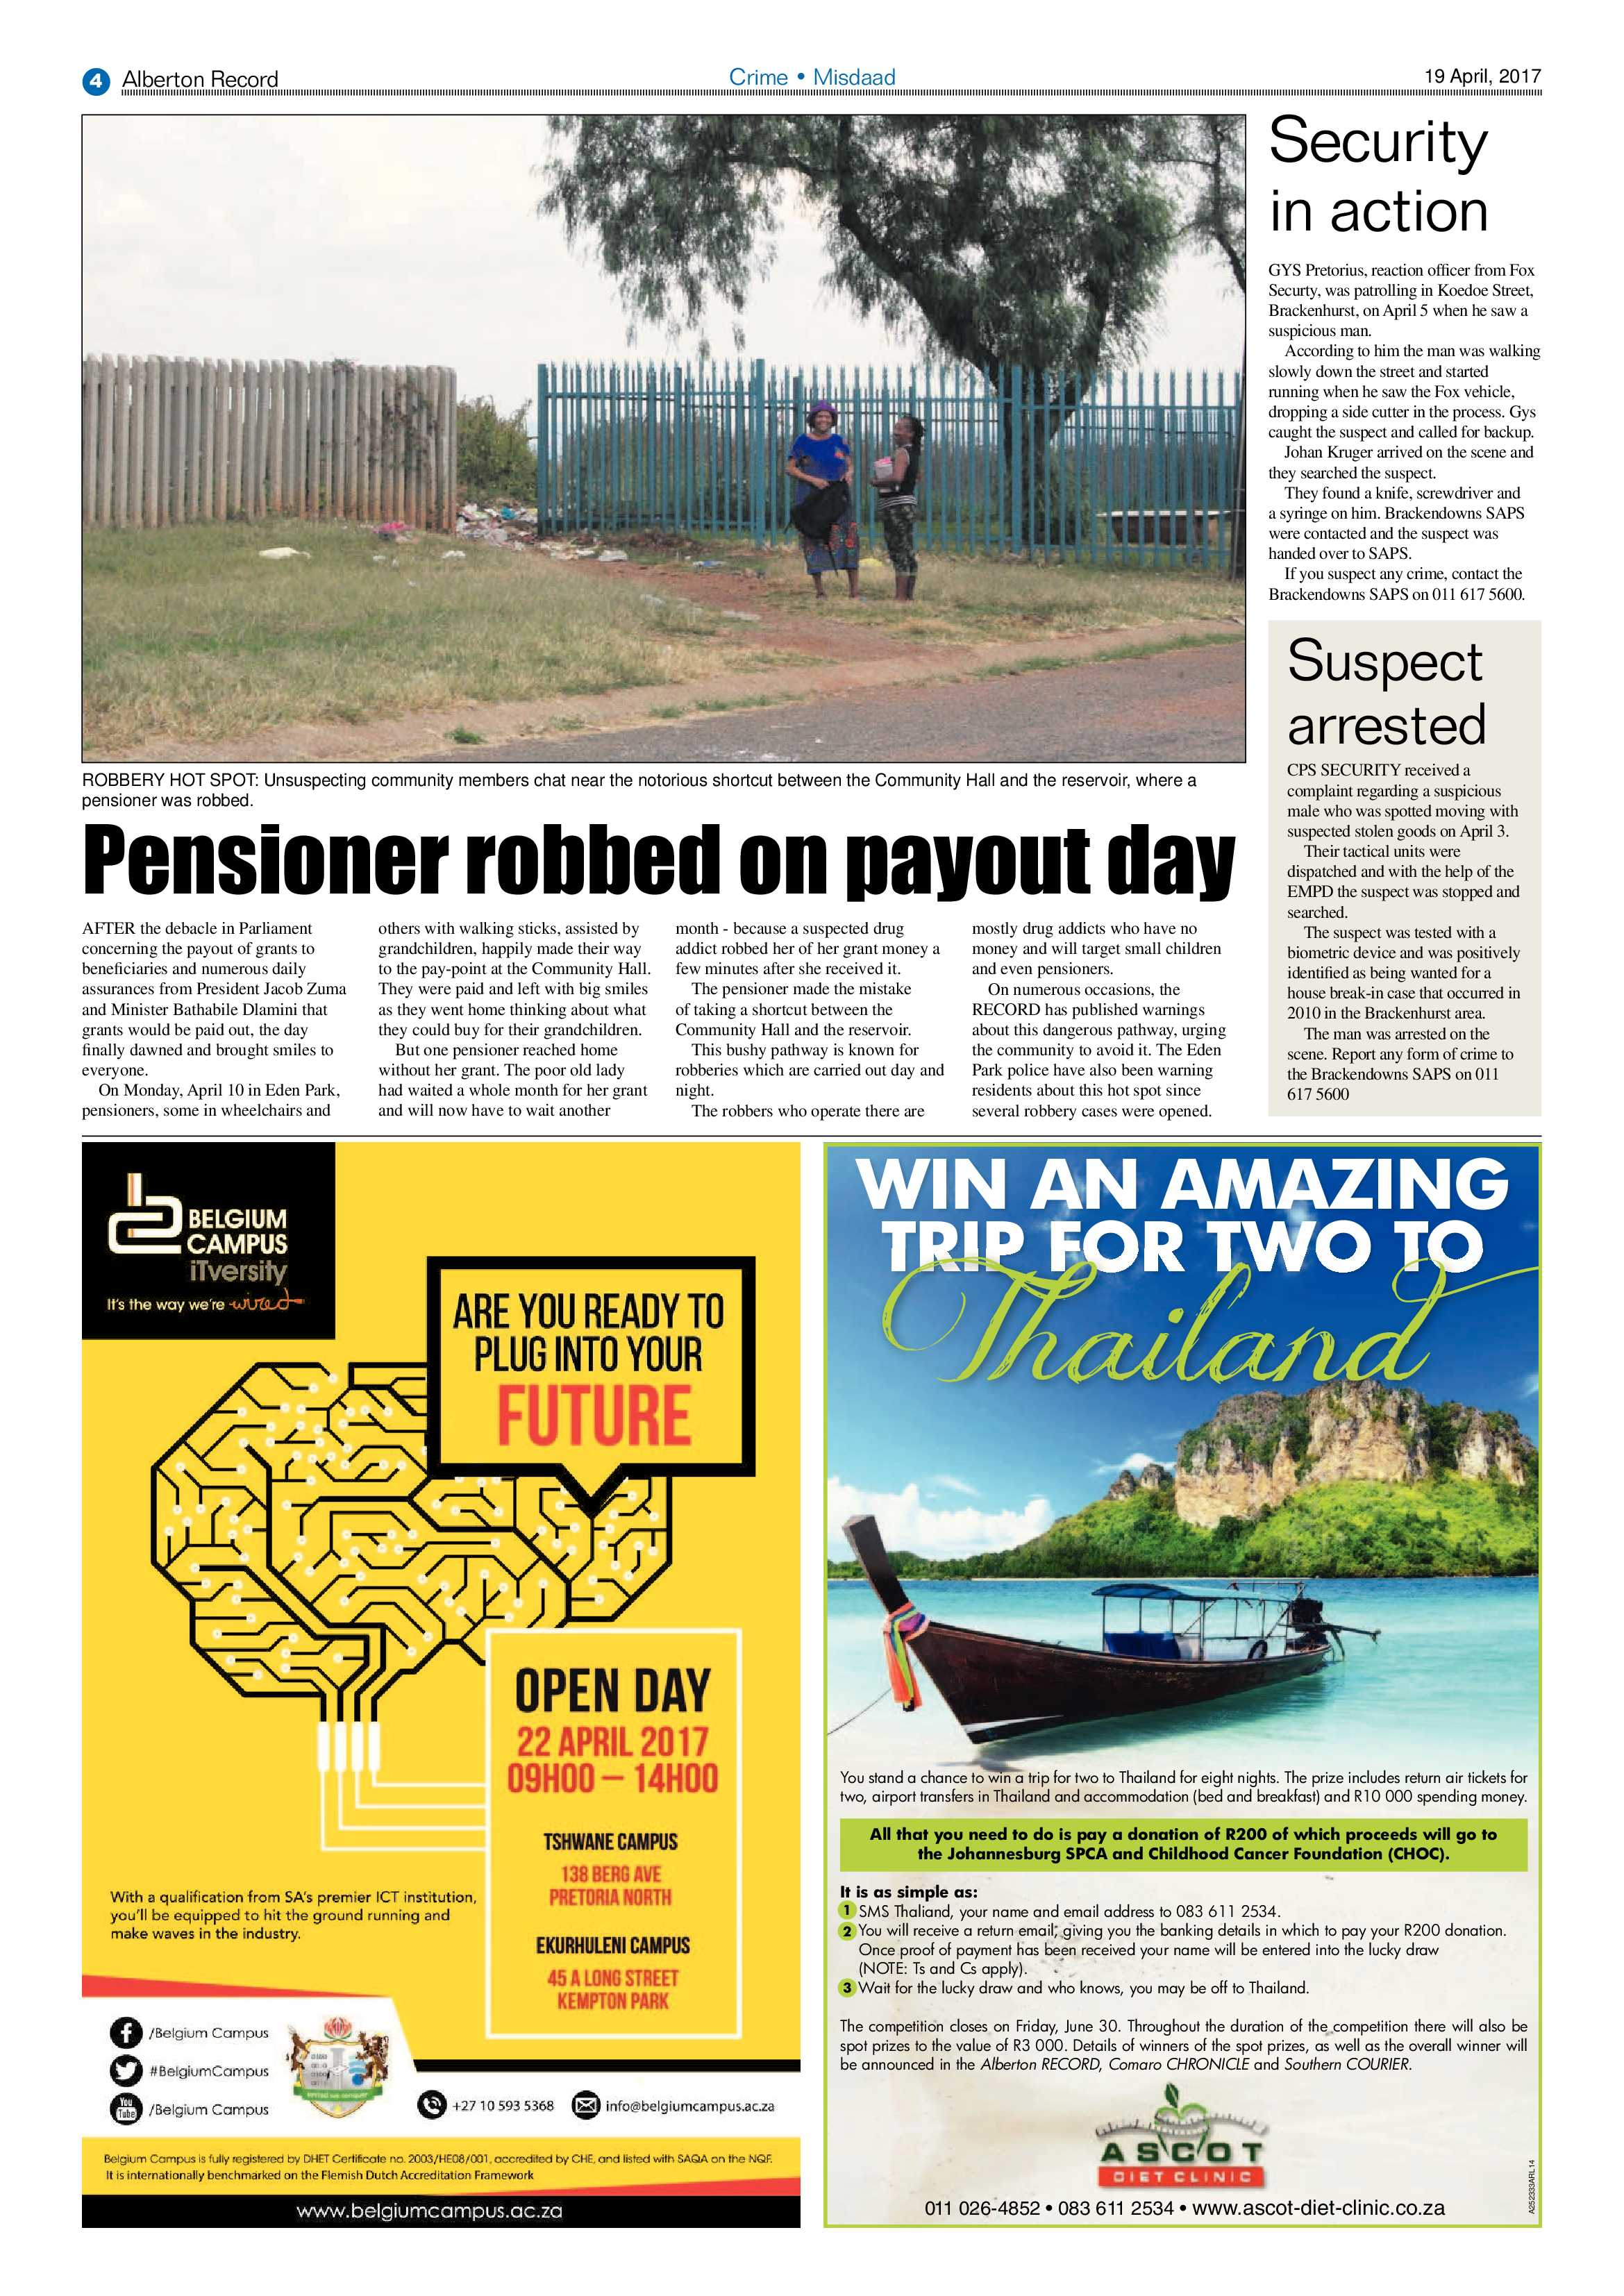 alberton-record-19-april-2017-epapers-page-4